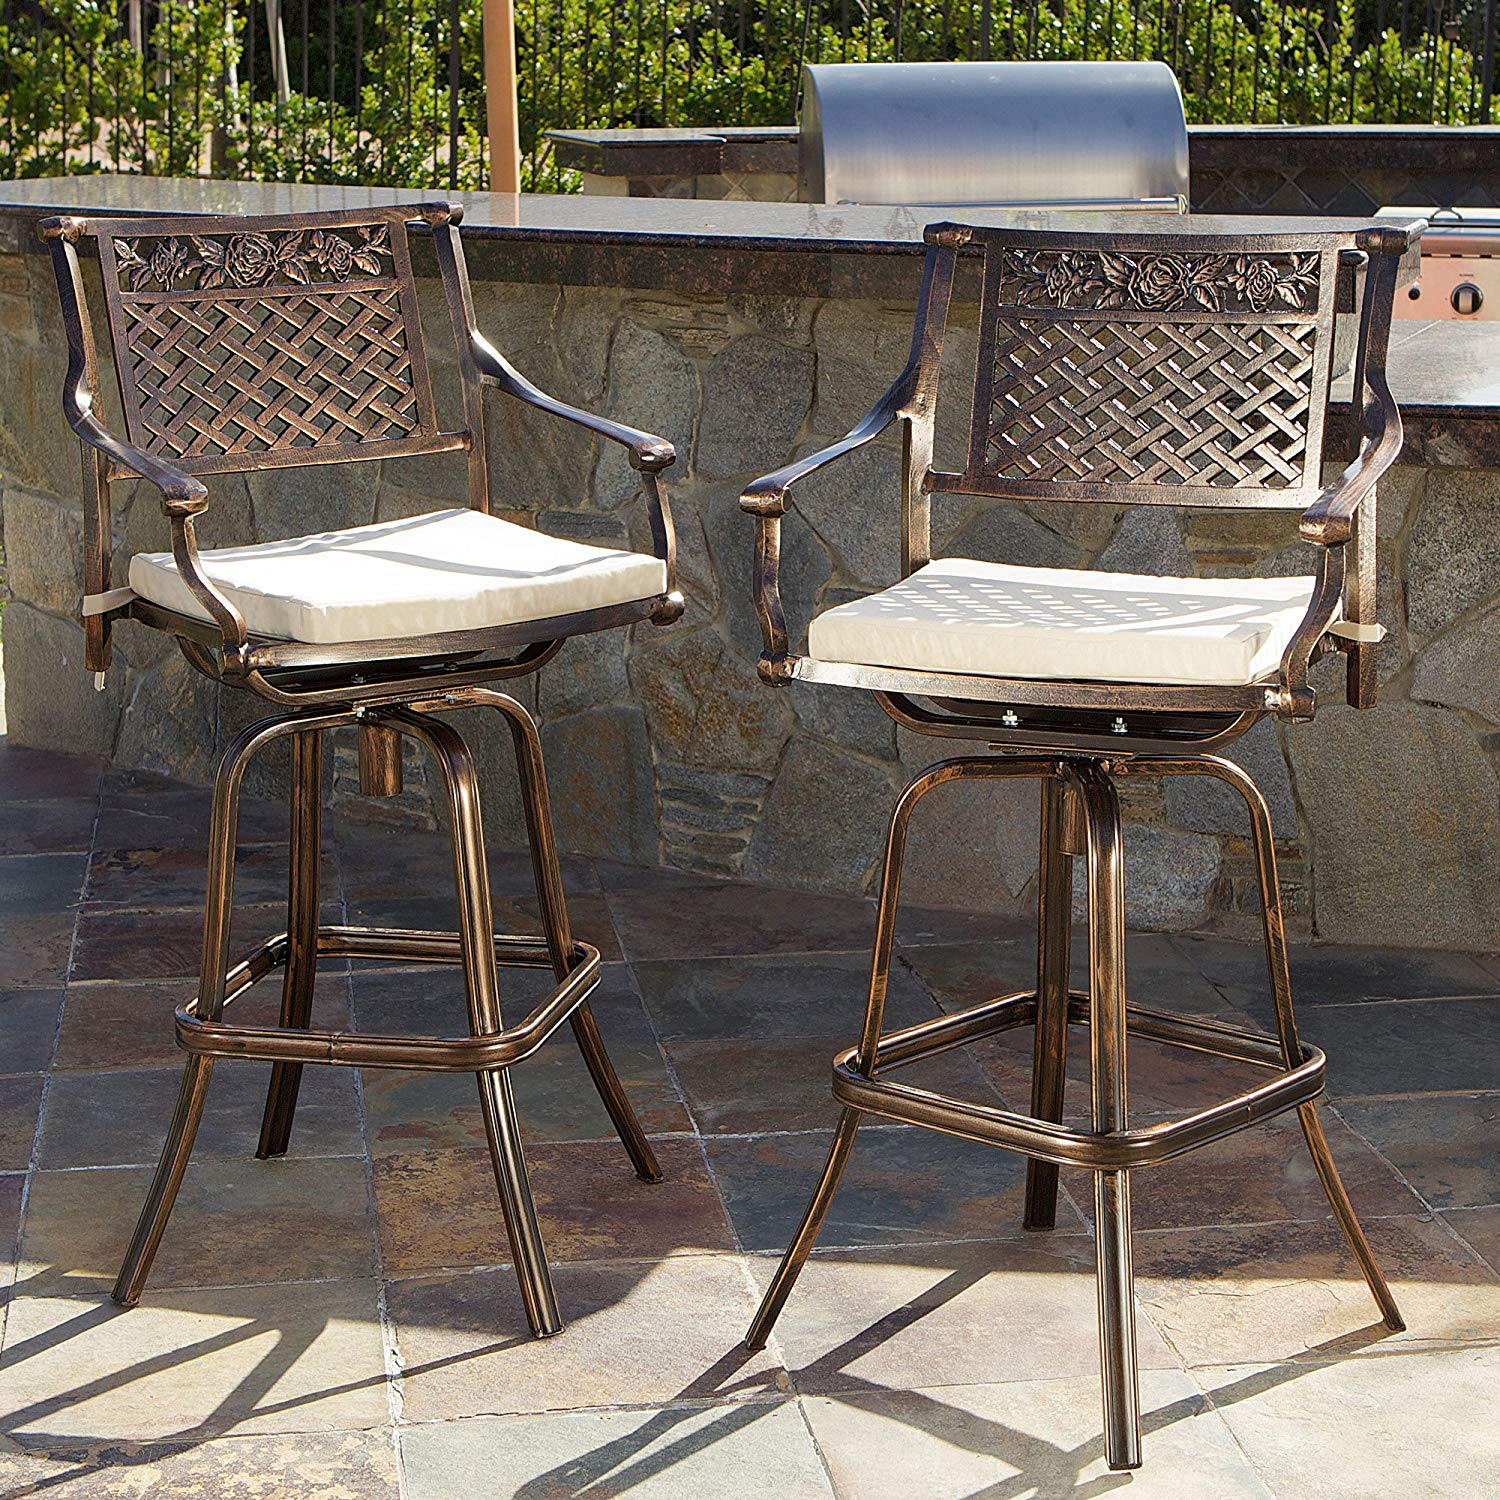 outdoor bar stools amazon.com : sierra outdoor cast aluminum swivel bar stools w/cushion (set MTXAJVR